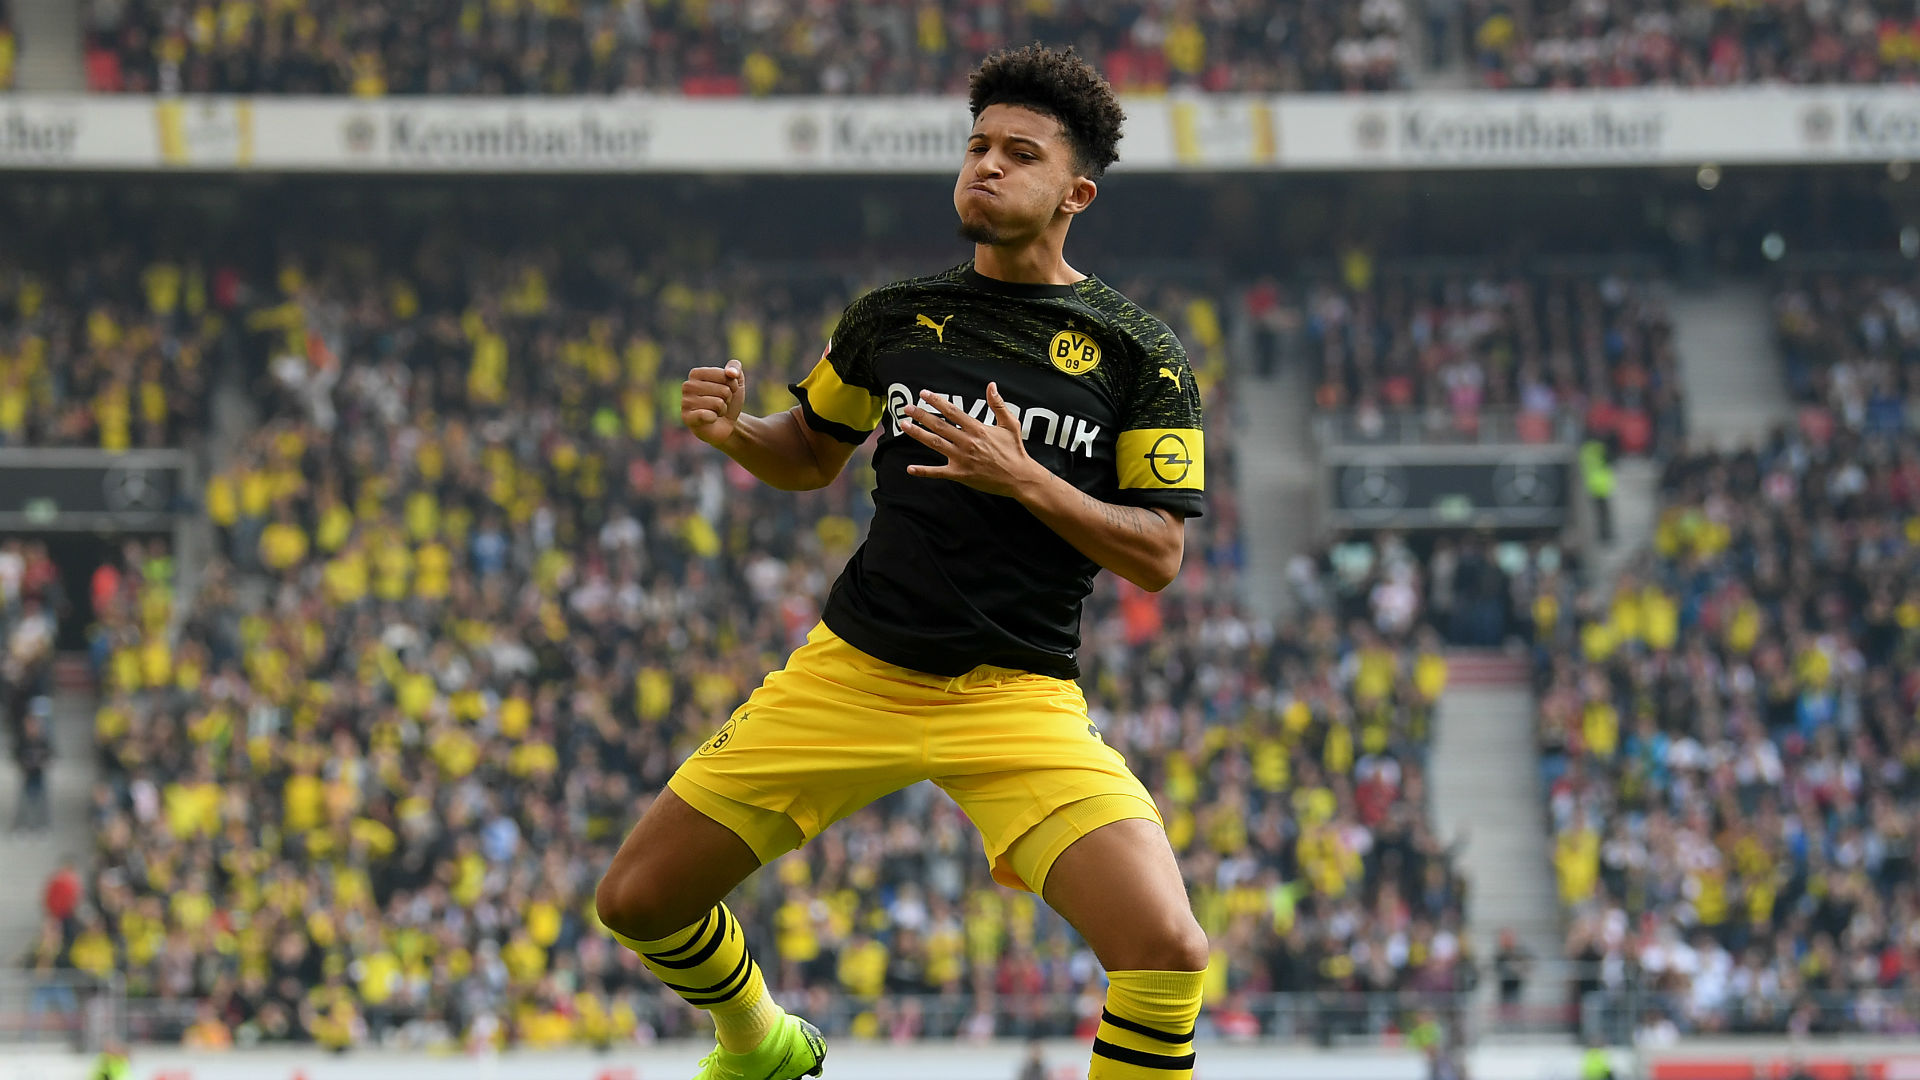 Borussia Dortmund v Bayern Munich: Sancho and BVB's young guns poised for title statement